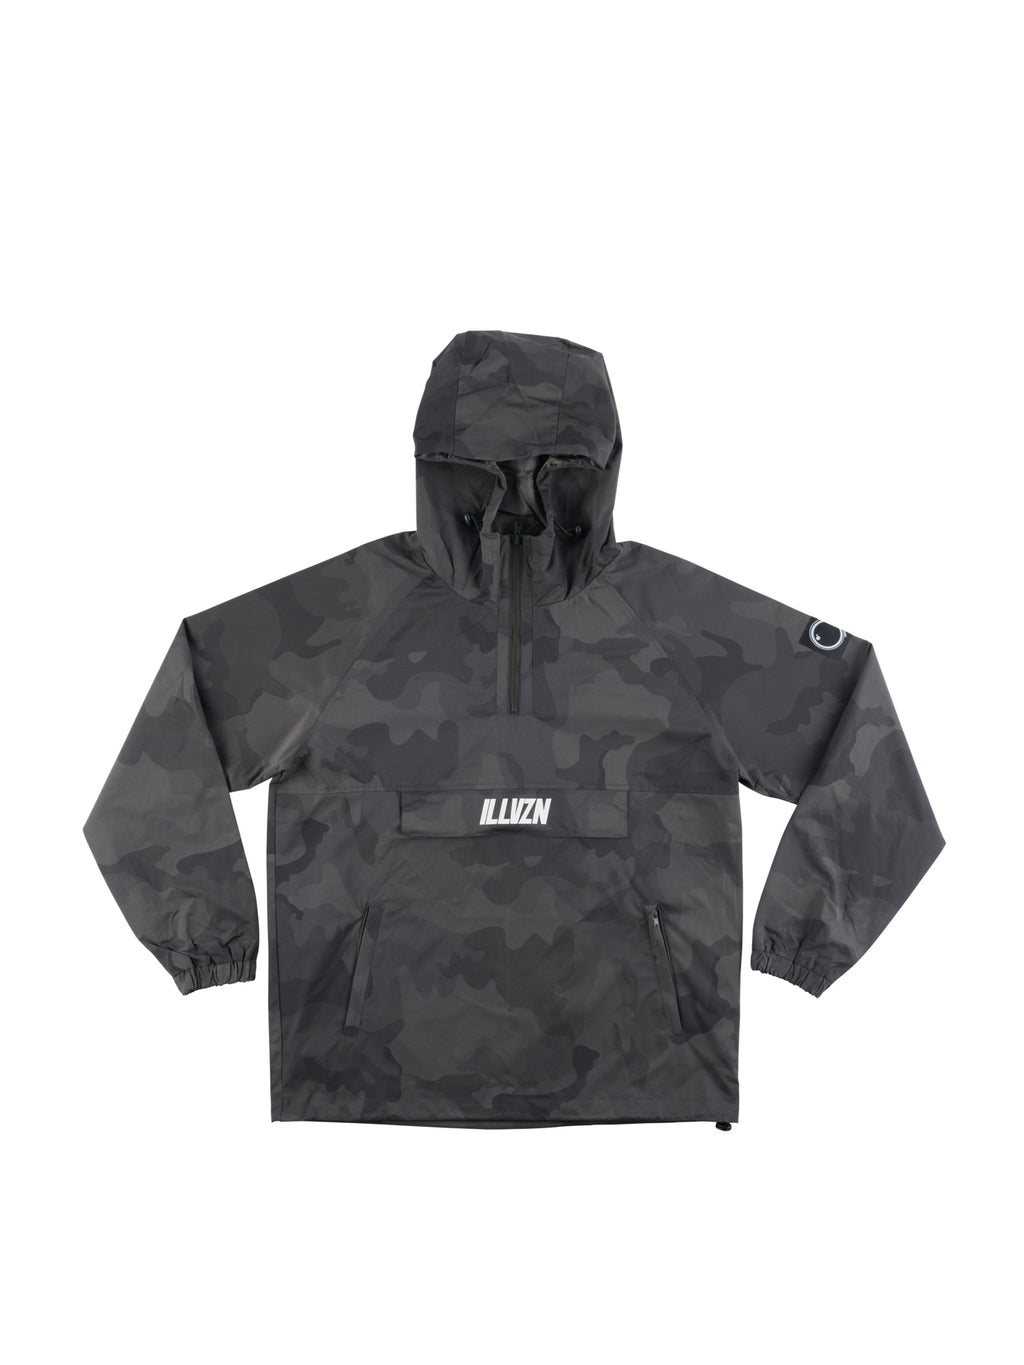 'DARK GREY' CAMO WINDBREAKER